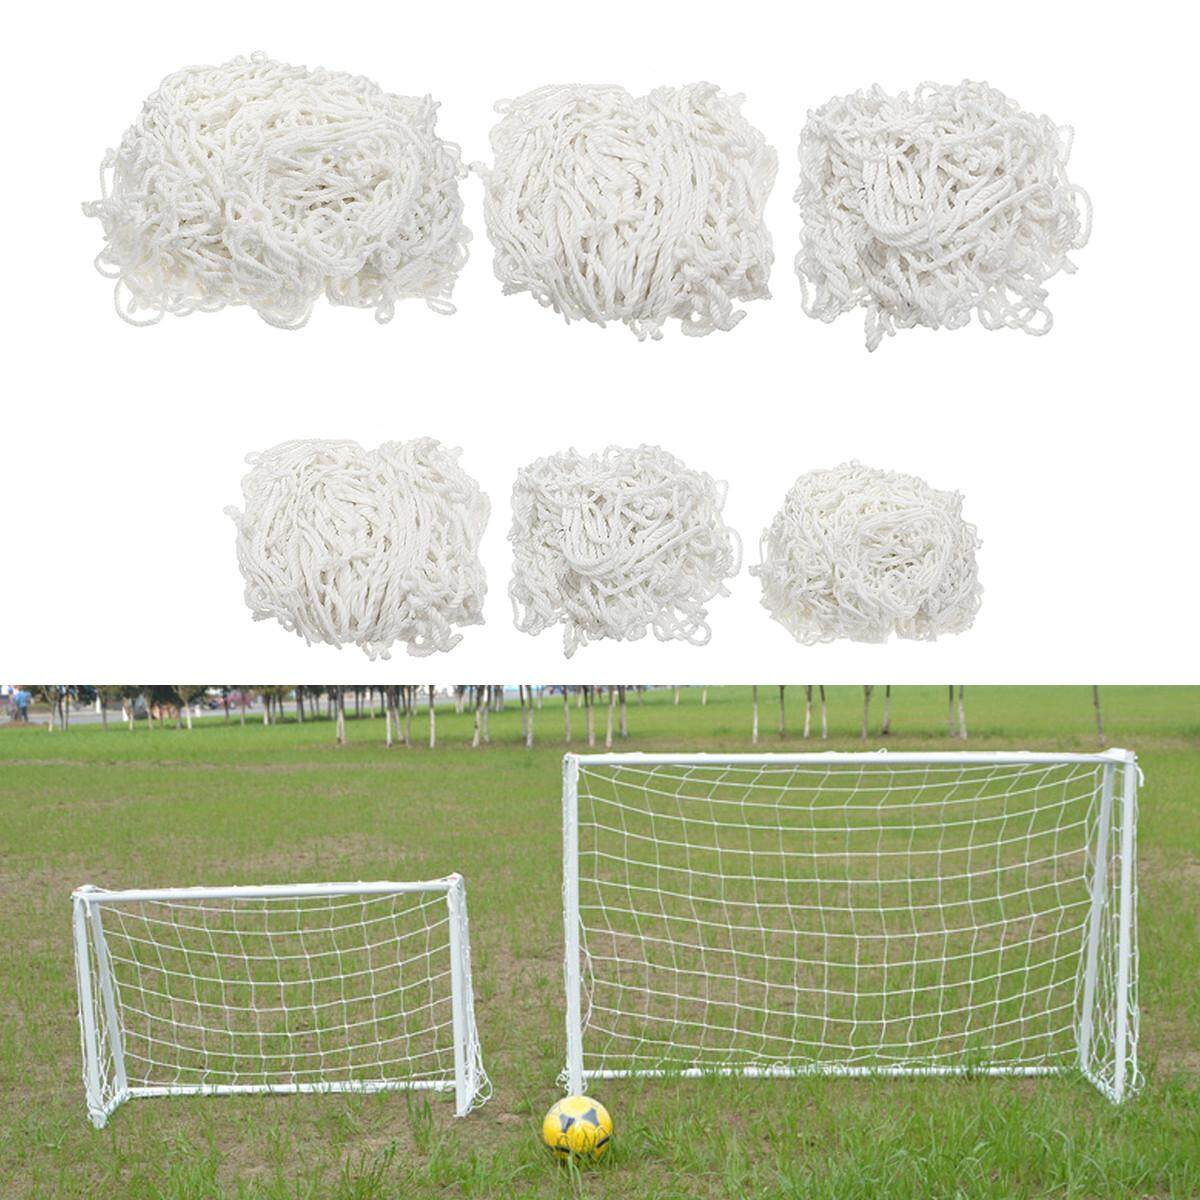 68cc00654 Football Soccer Goal Post Net Training Match Replace Outdoor Full Size  Adult Kid - intl